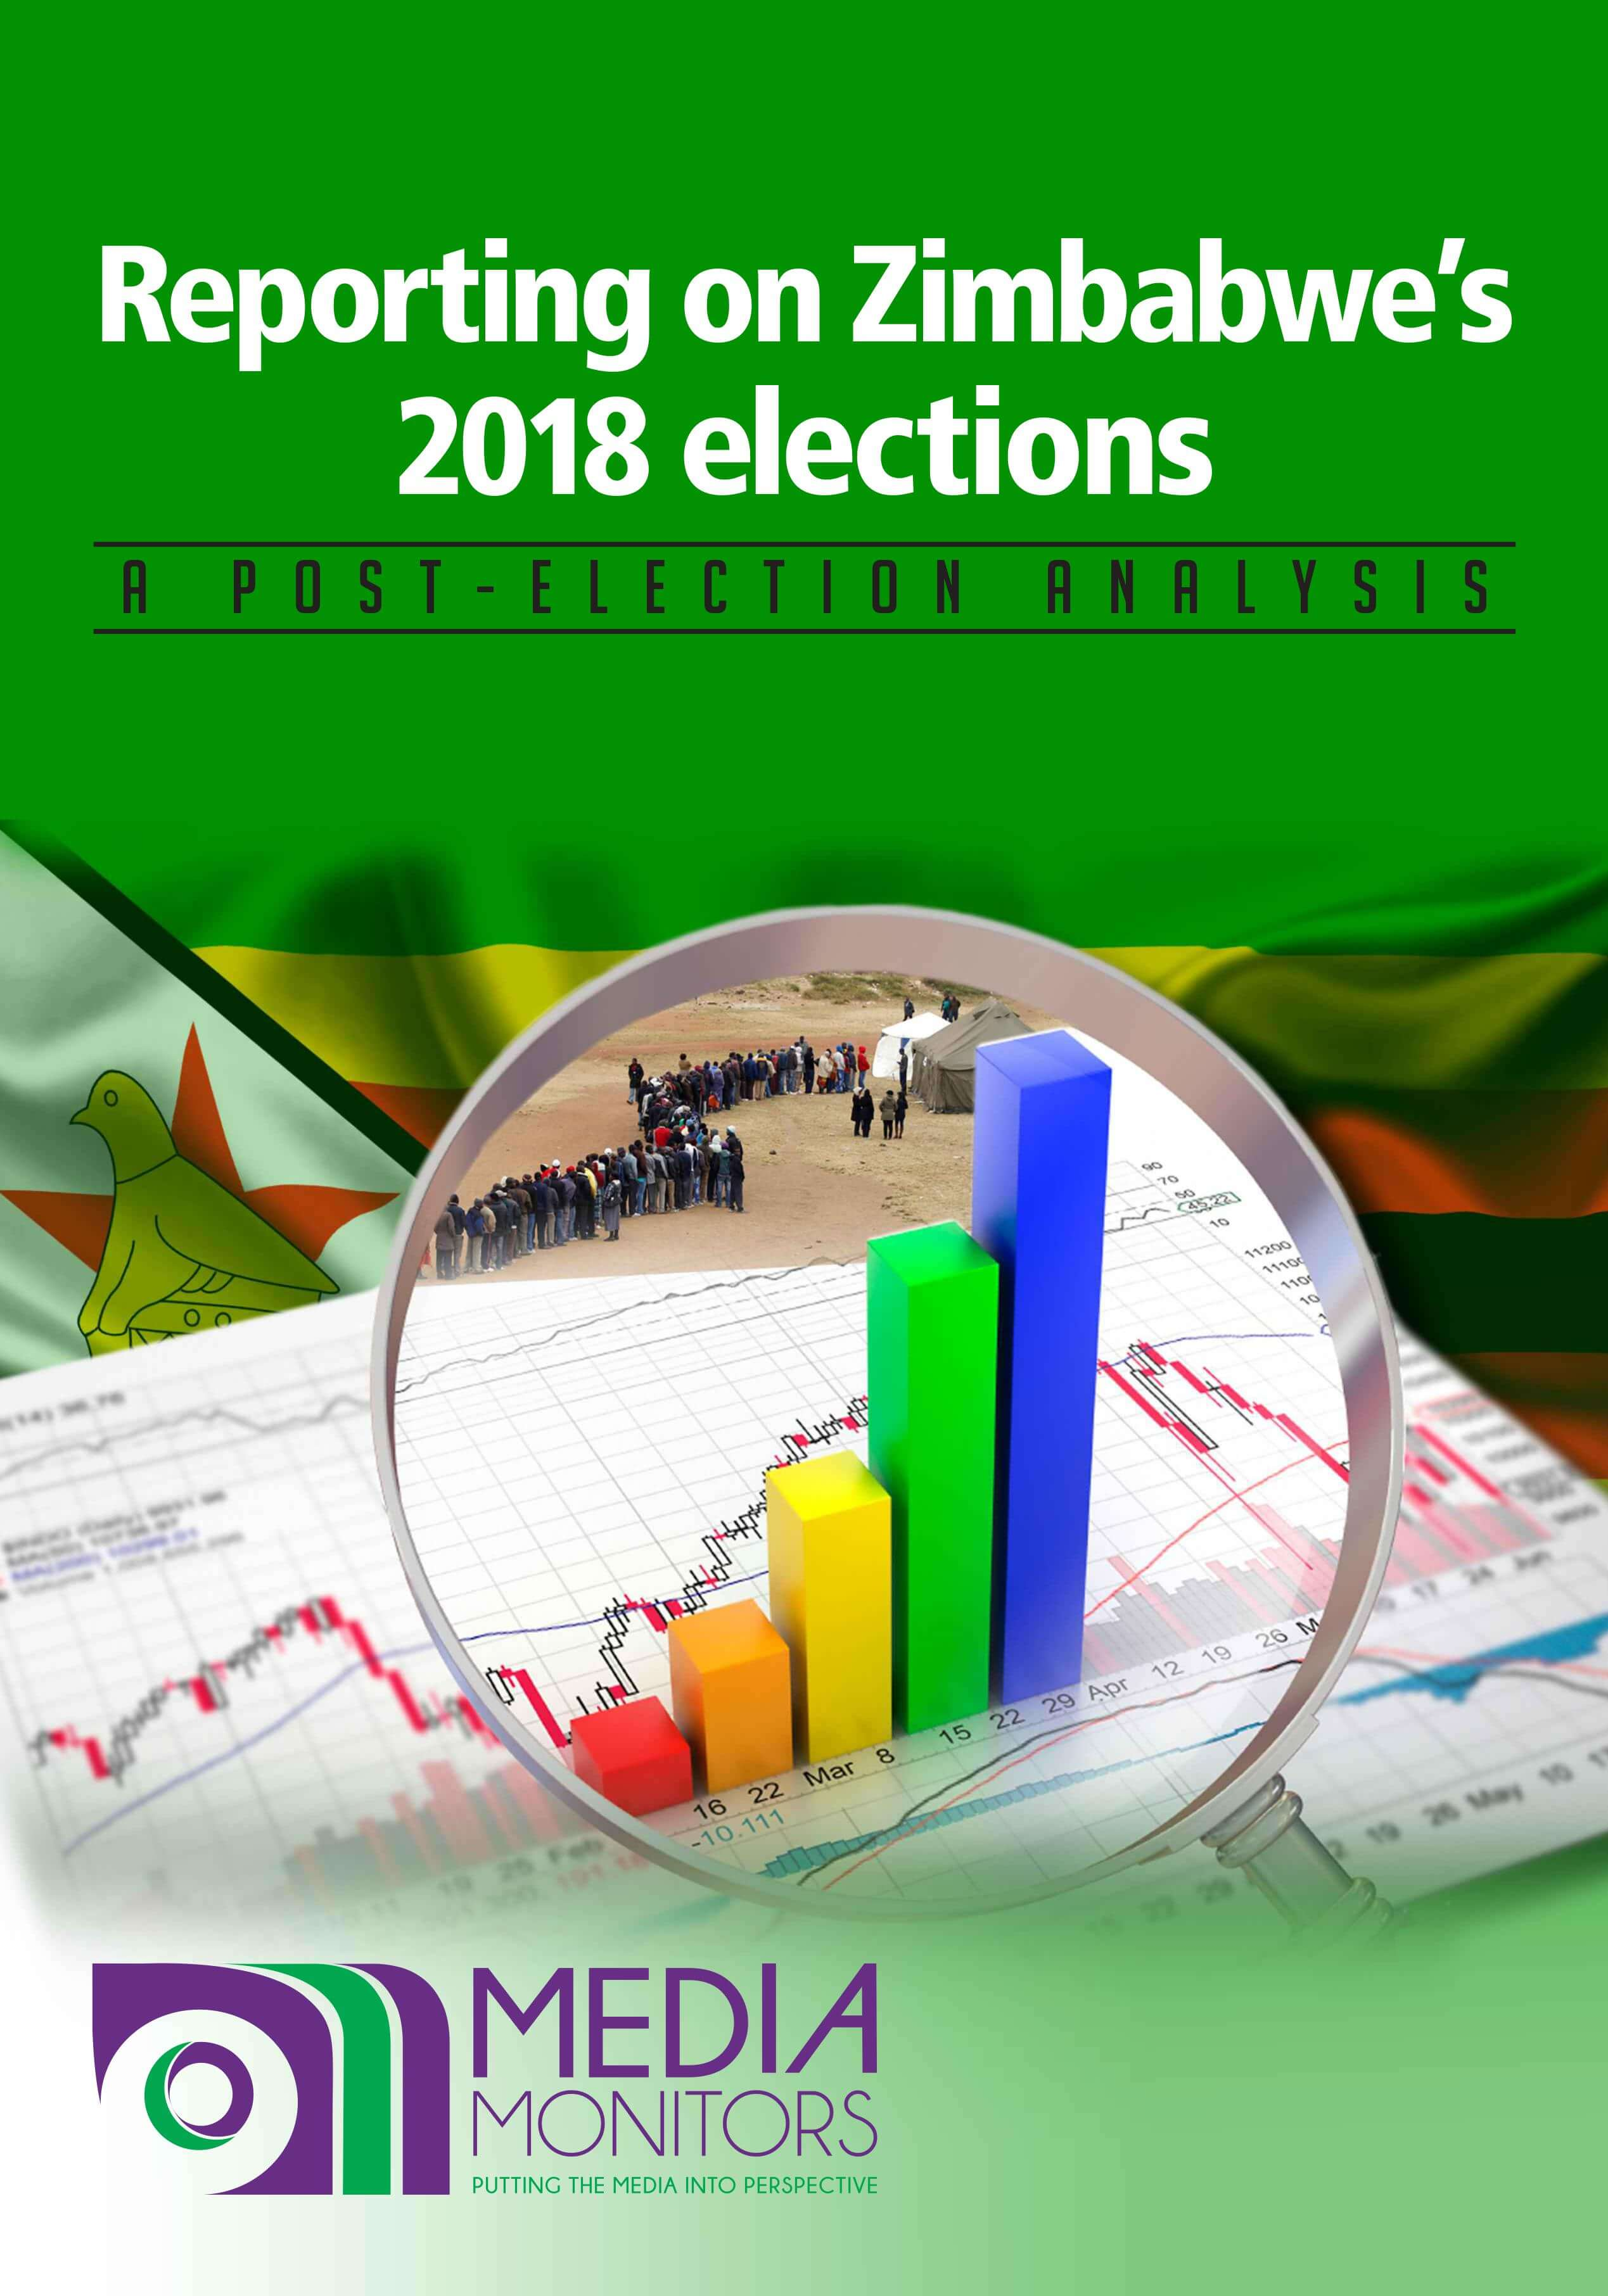 Reporting on Zimbabwe's 2018 elections – a post-election analysis